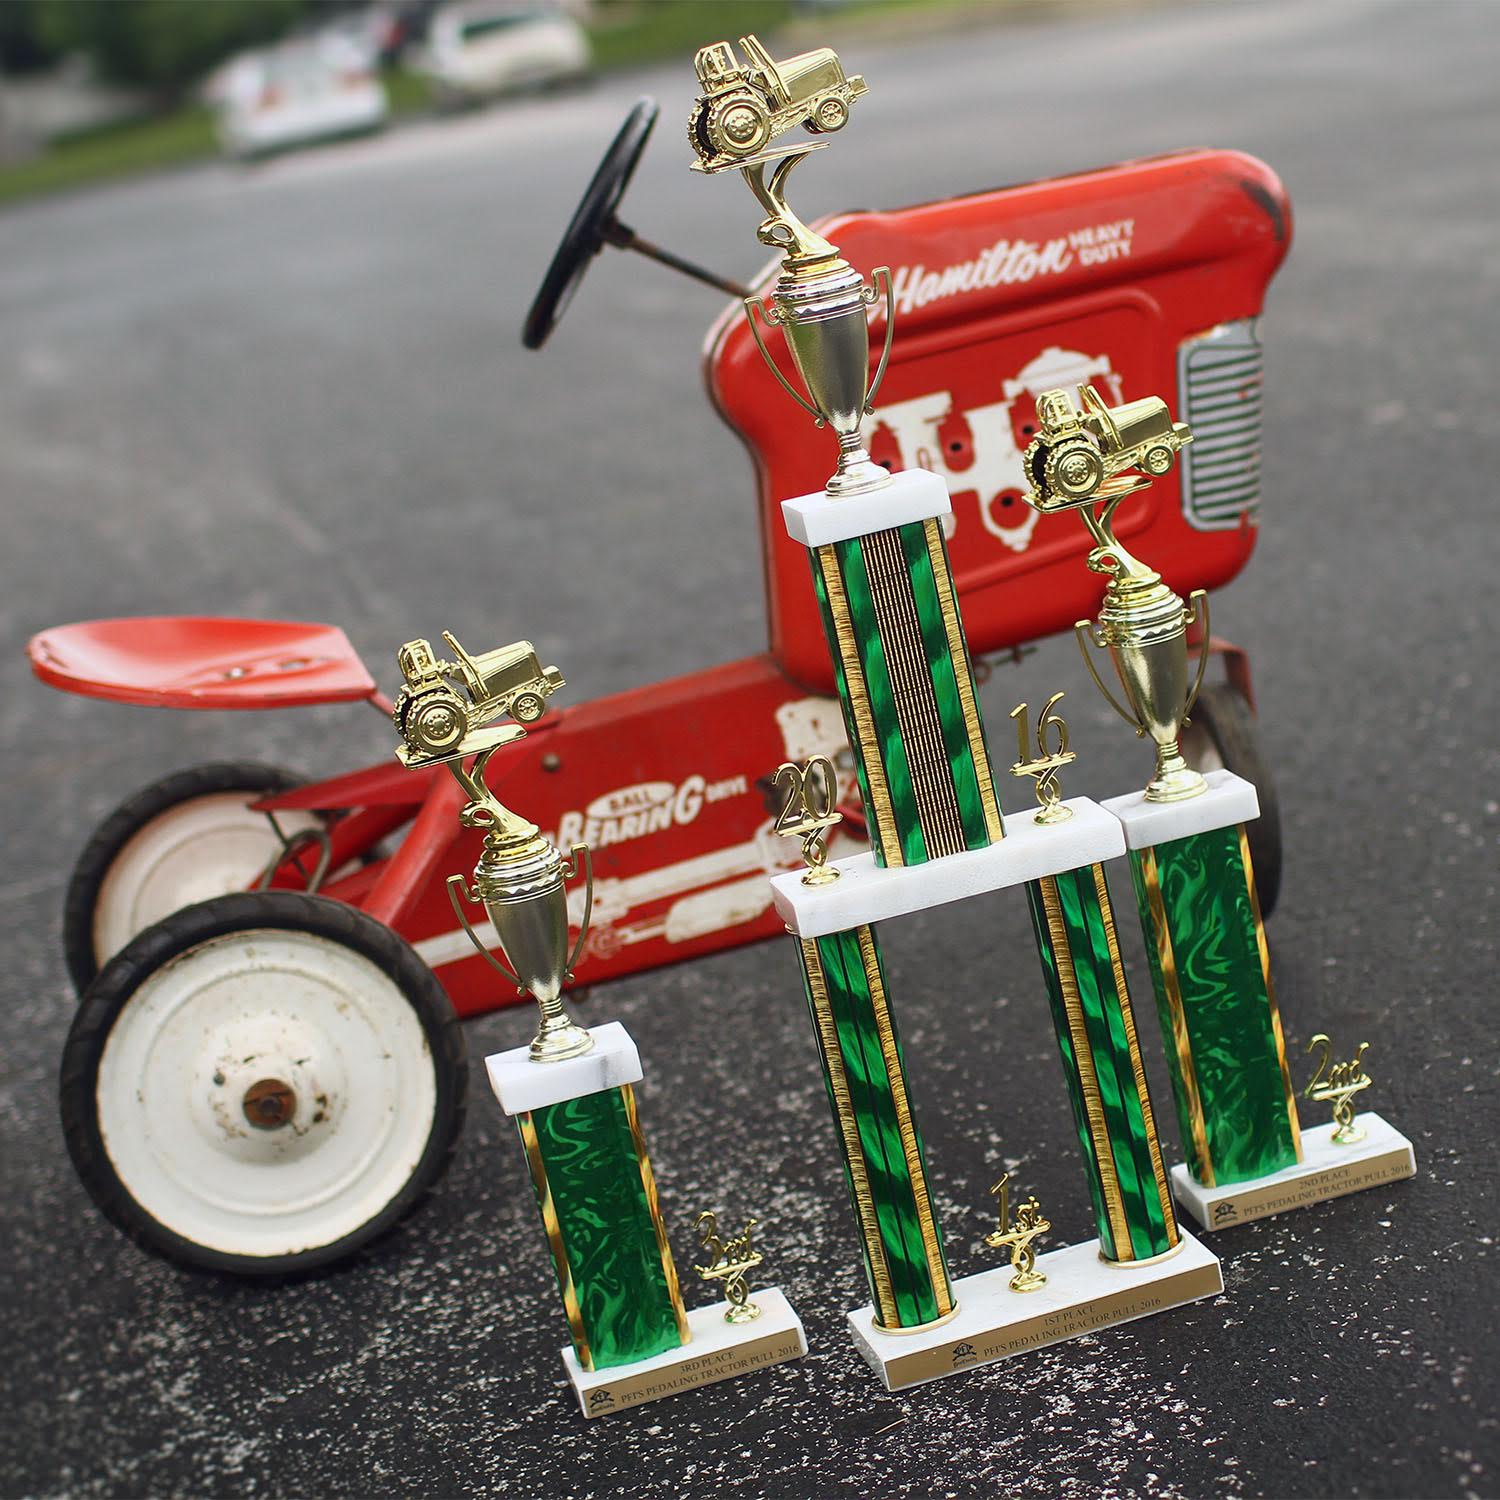 PFI's Pedaling Tractor Pull Kicks off the Magnificent Mule